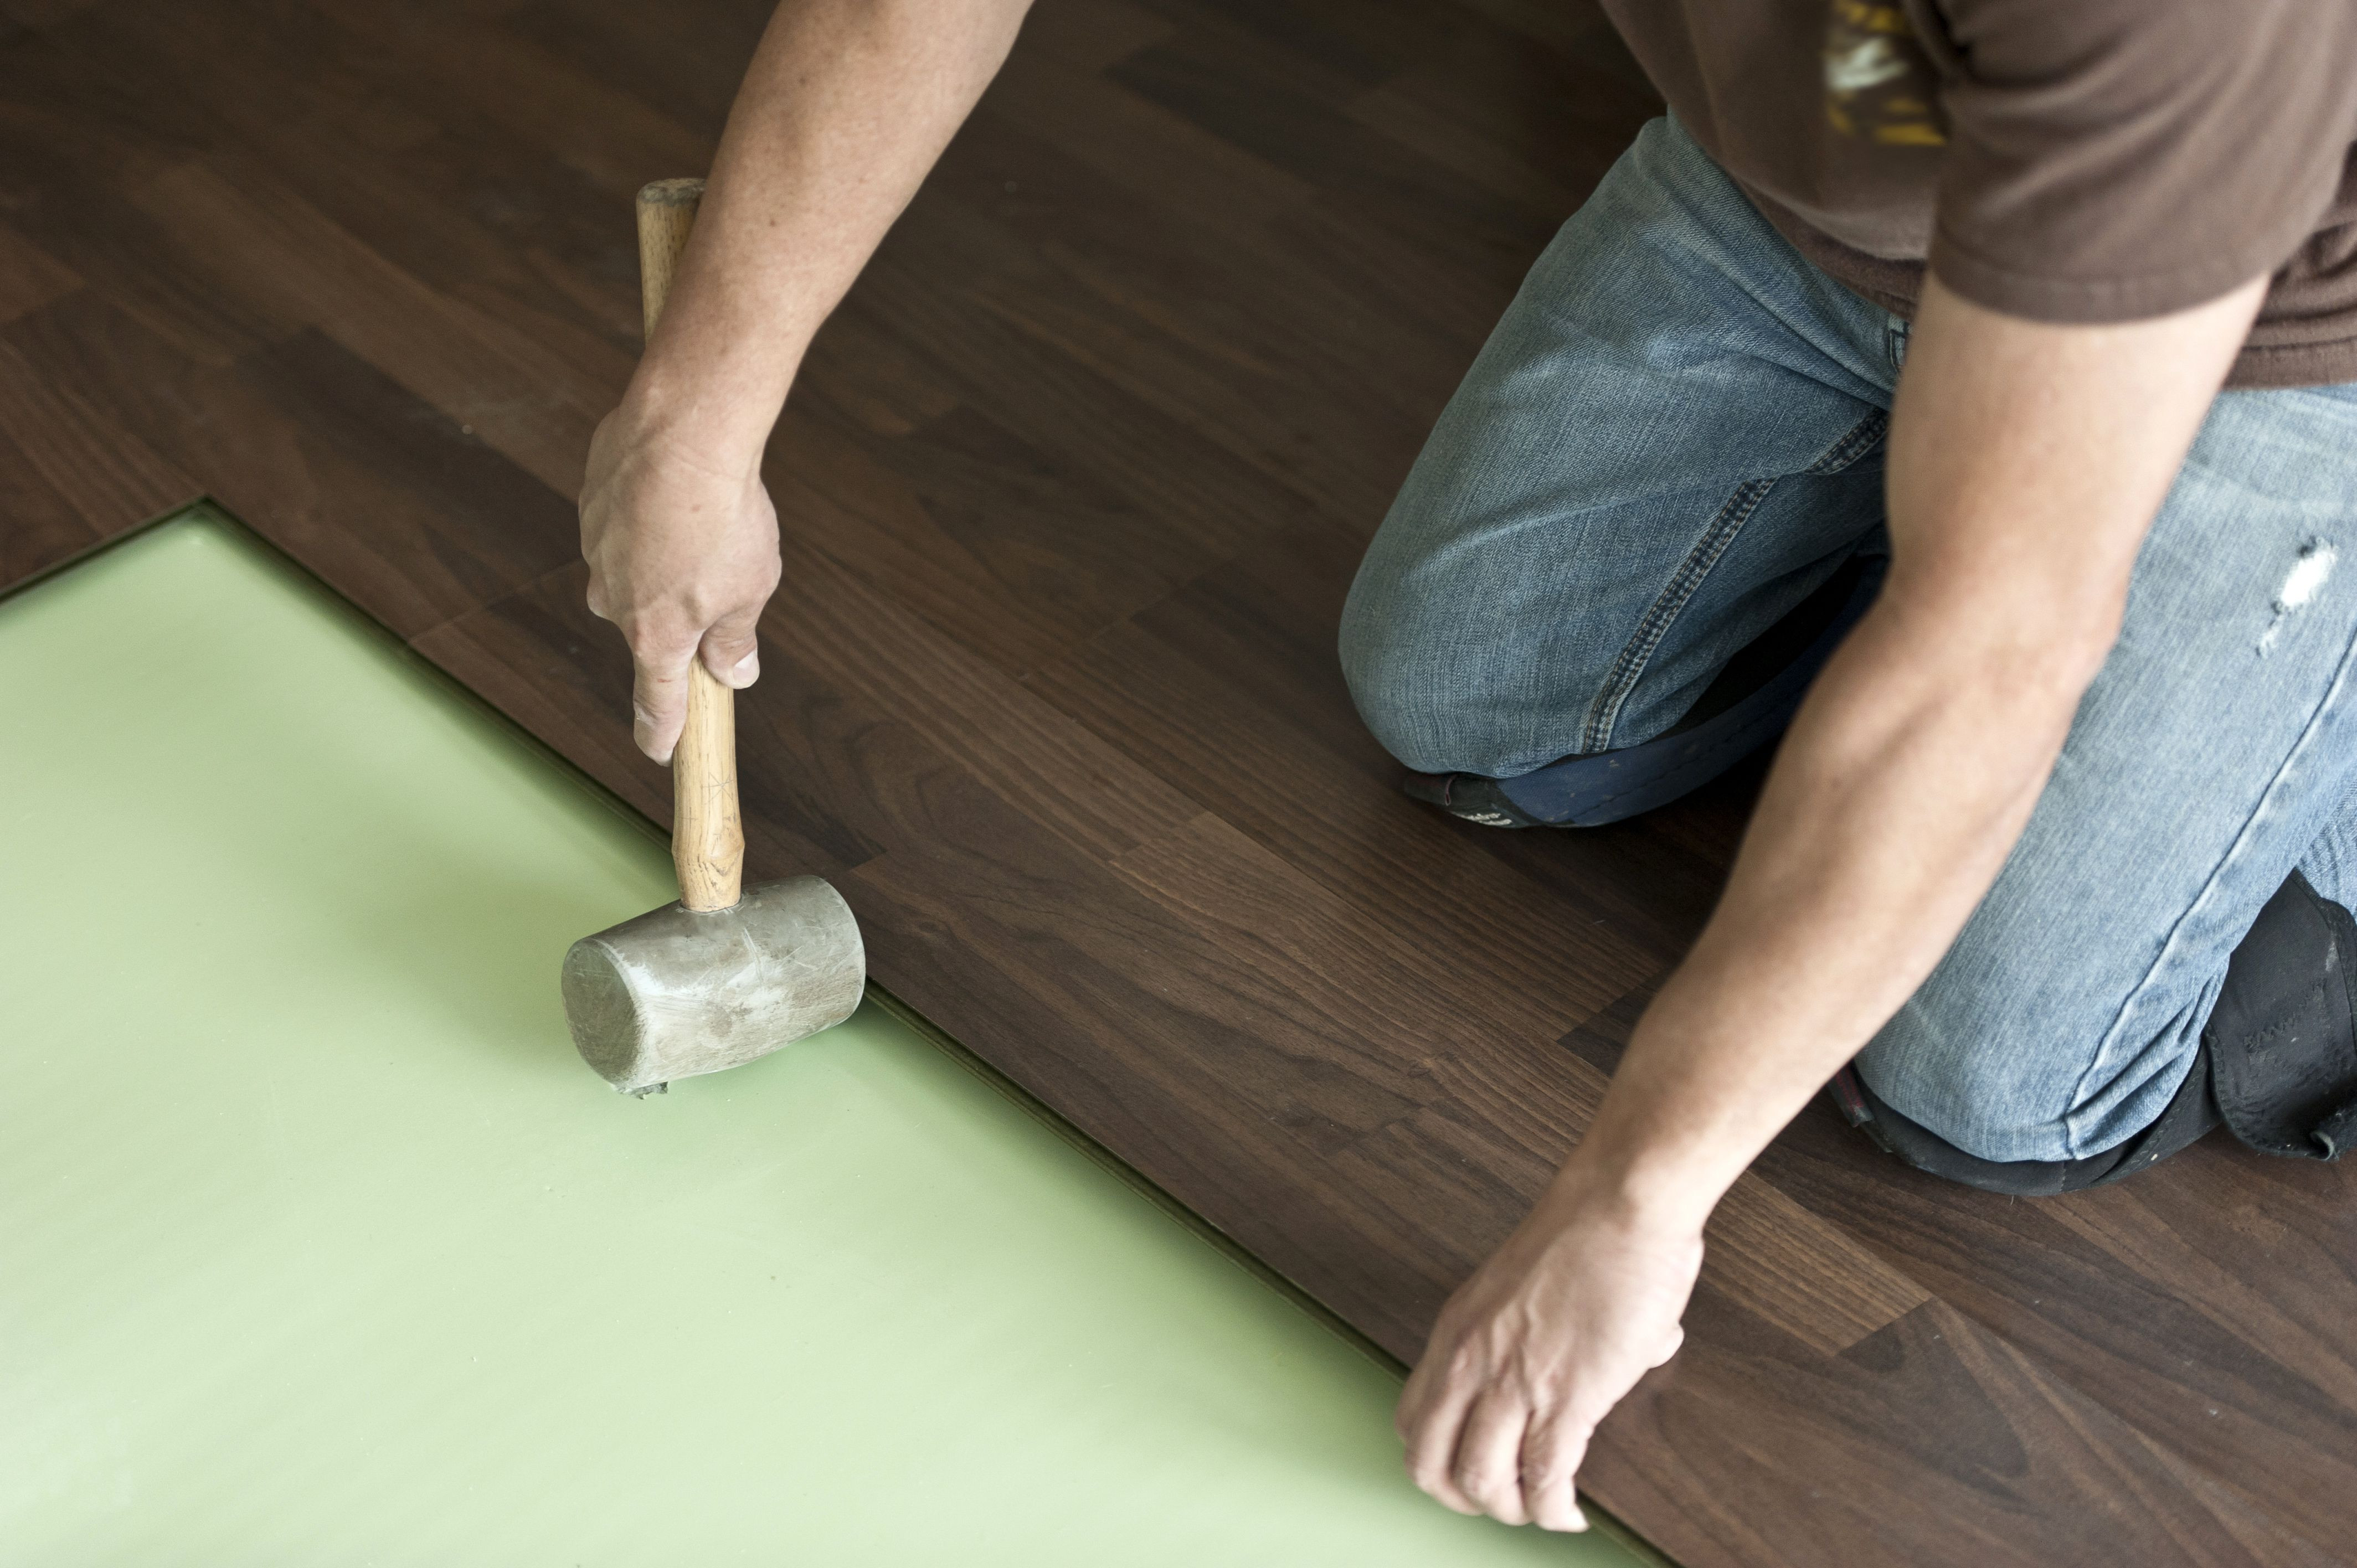 glue down hardwood floor problems of can a foam pad be use under solid hardwood flooring with installing hardwood floor 155149312 57e967d45f9b586c35ade84a